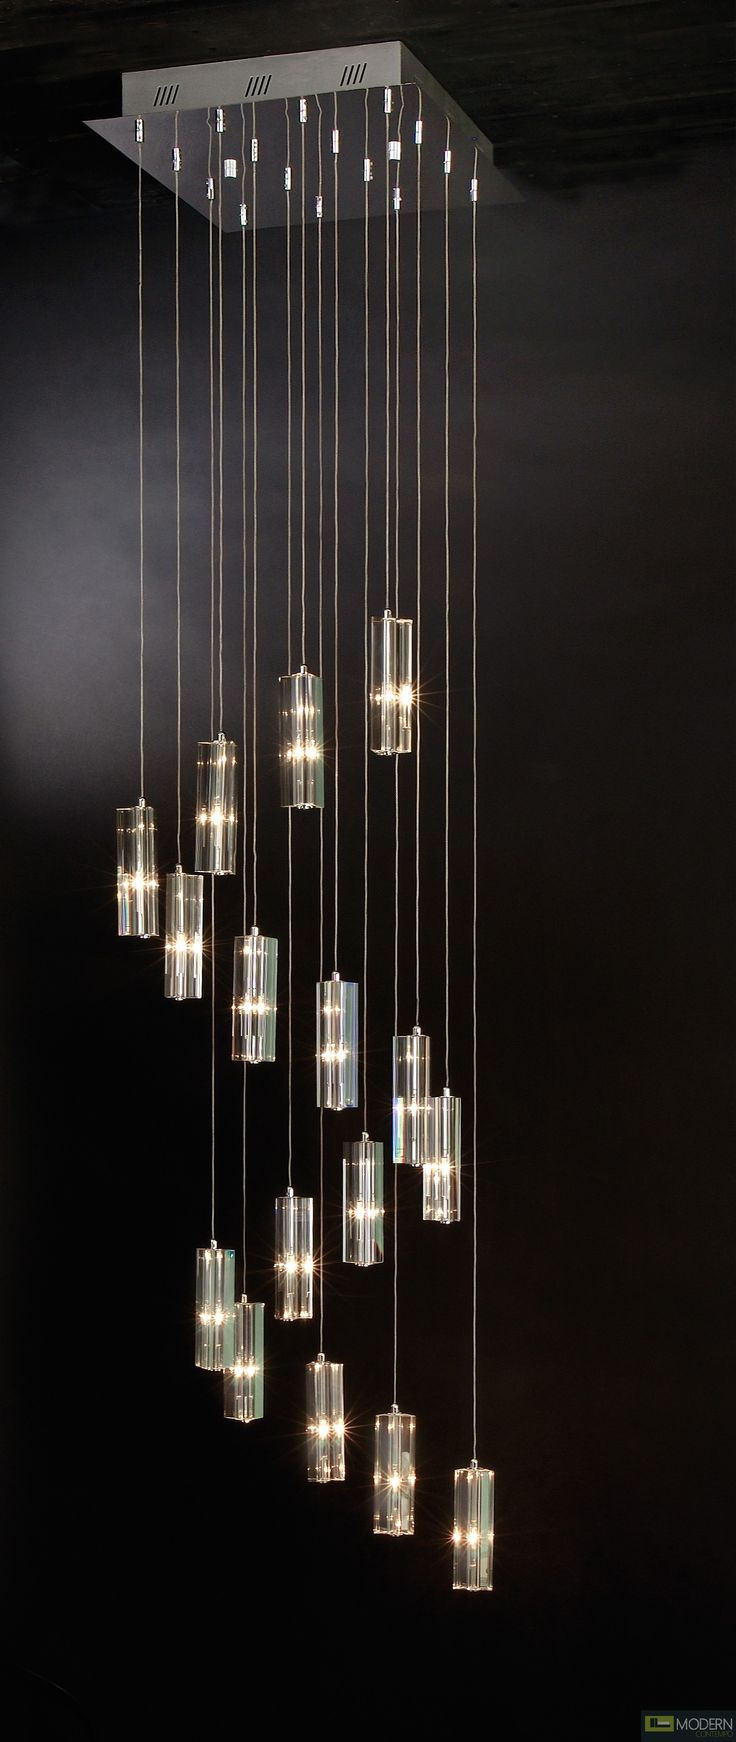 The Icarus Falling Chandelier 2 100 Chandelier Icarus